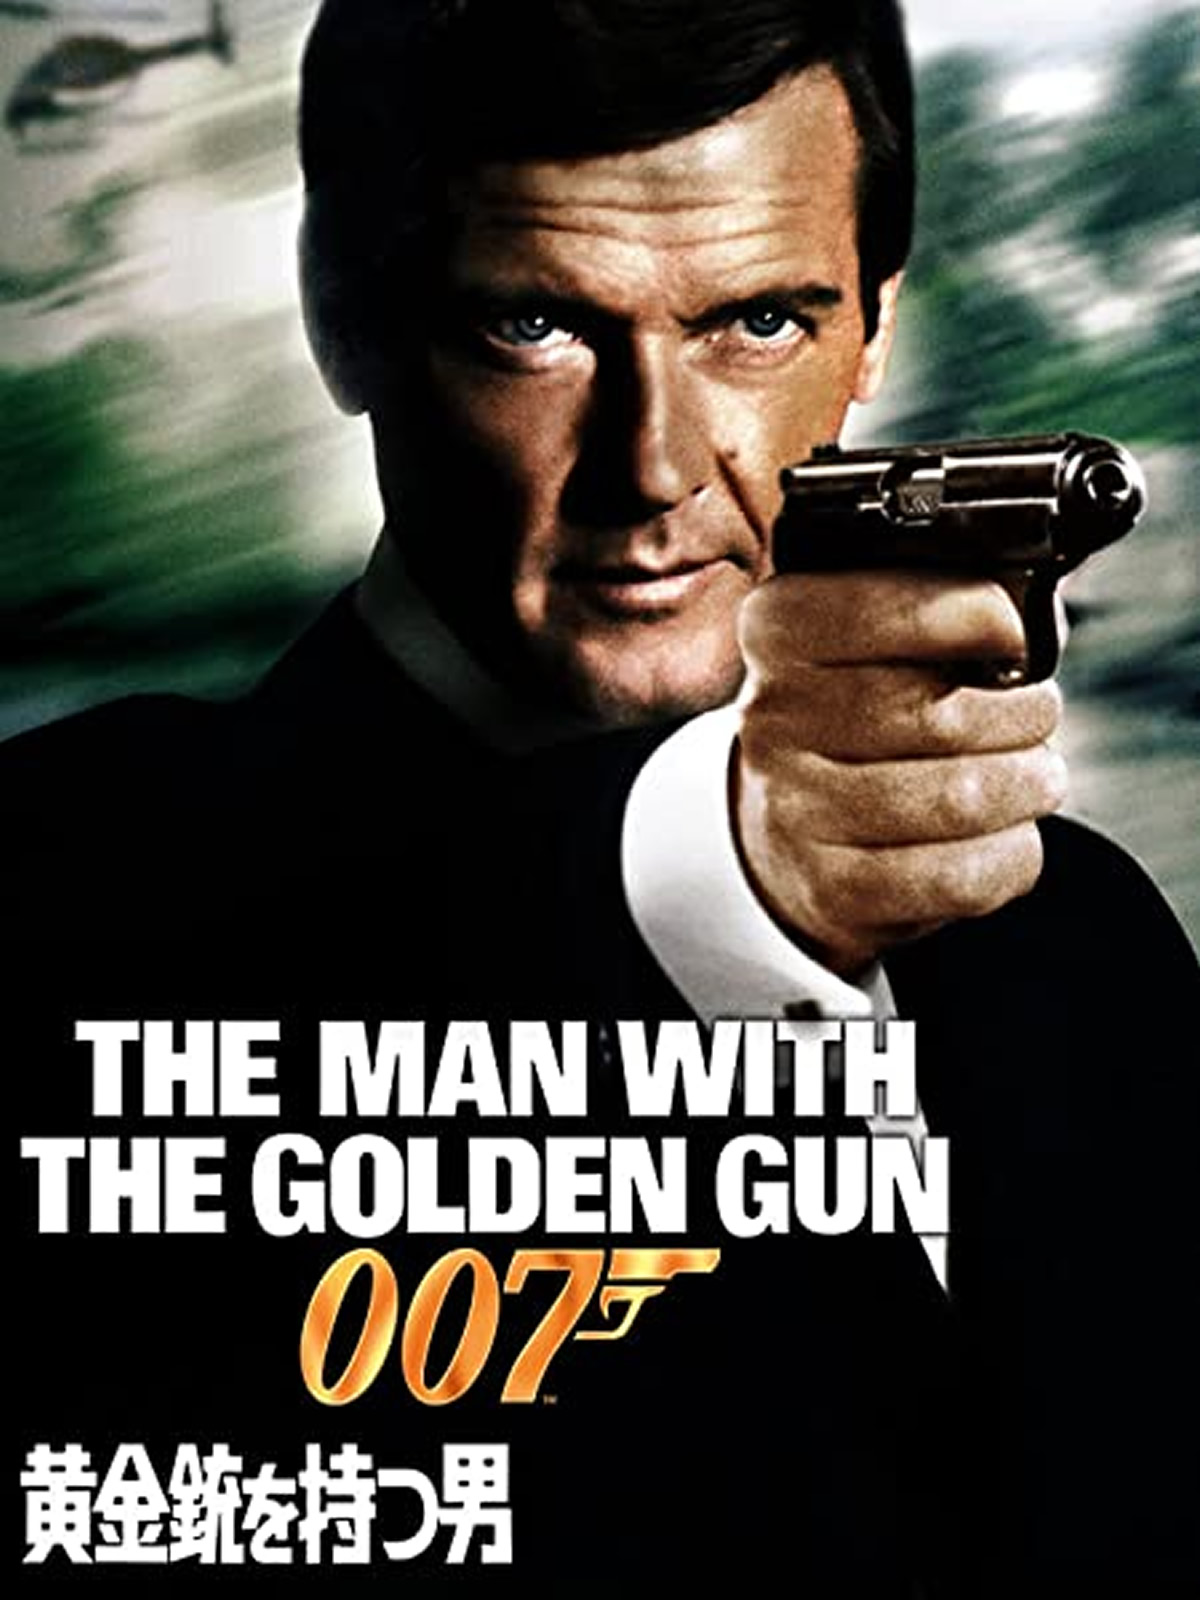 007 黄金銃を持つ男(The Man with the Golden Gun)